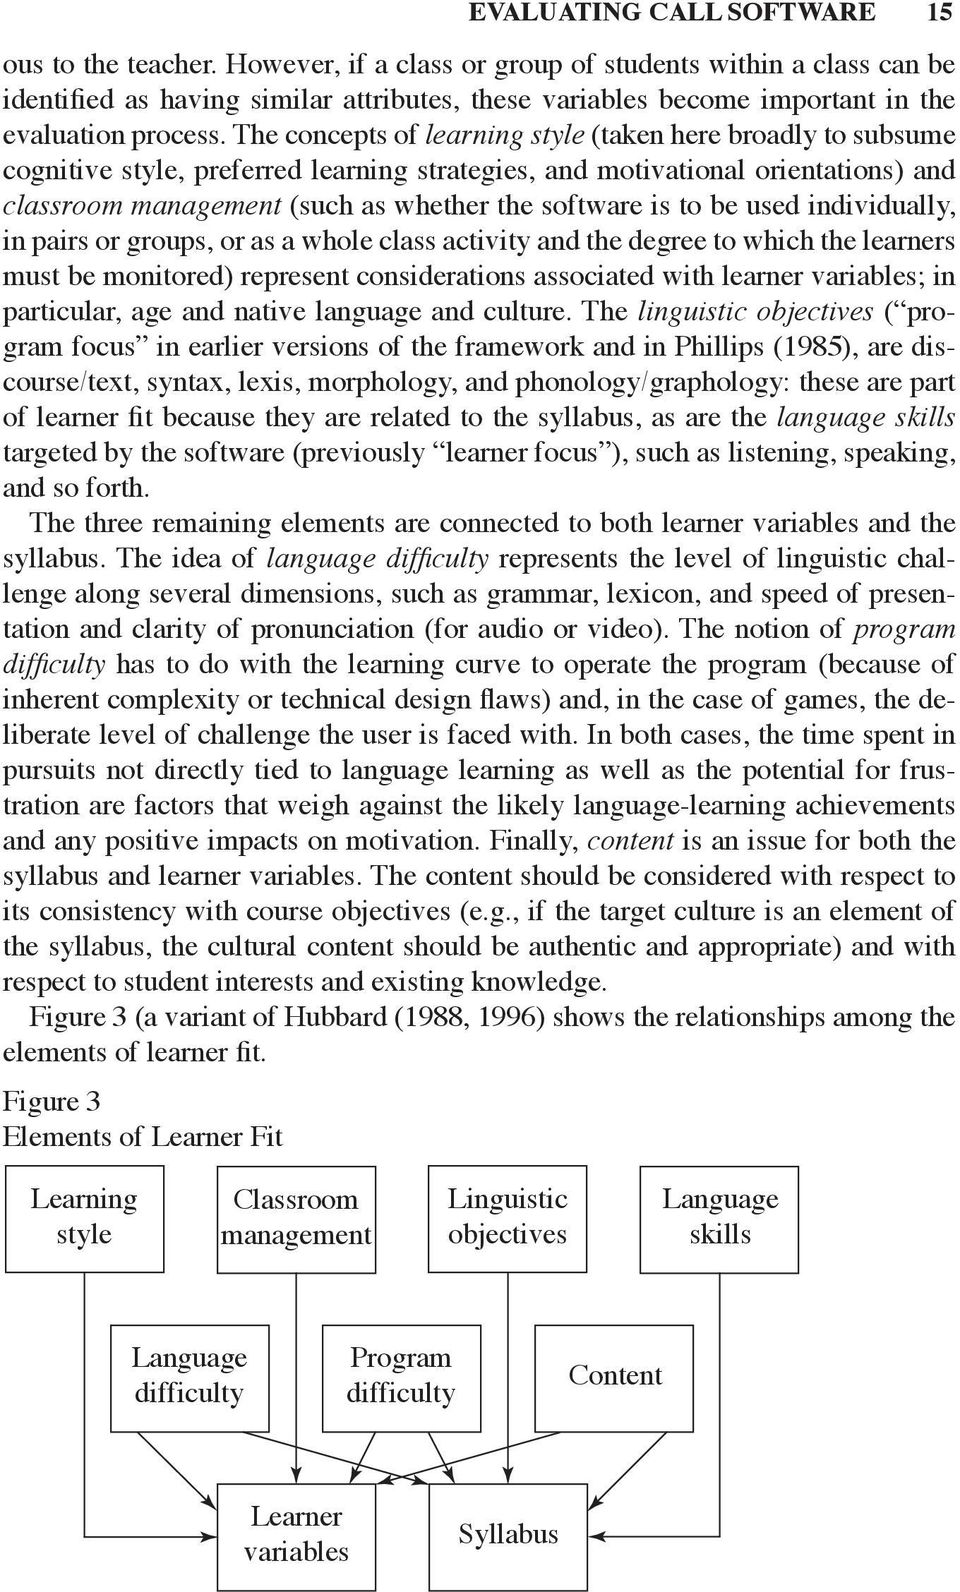 The concepts of learning style (taken here broadly to subsume cognitive style, preferred learning strategies, and motivational orientations) and classroom management (such as whether the software is